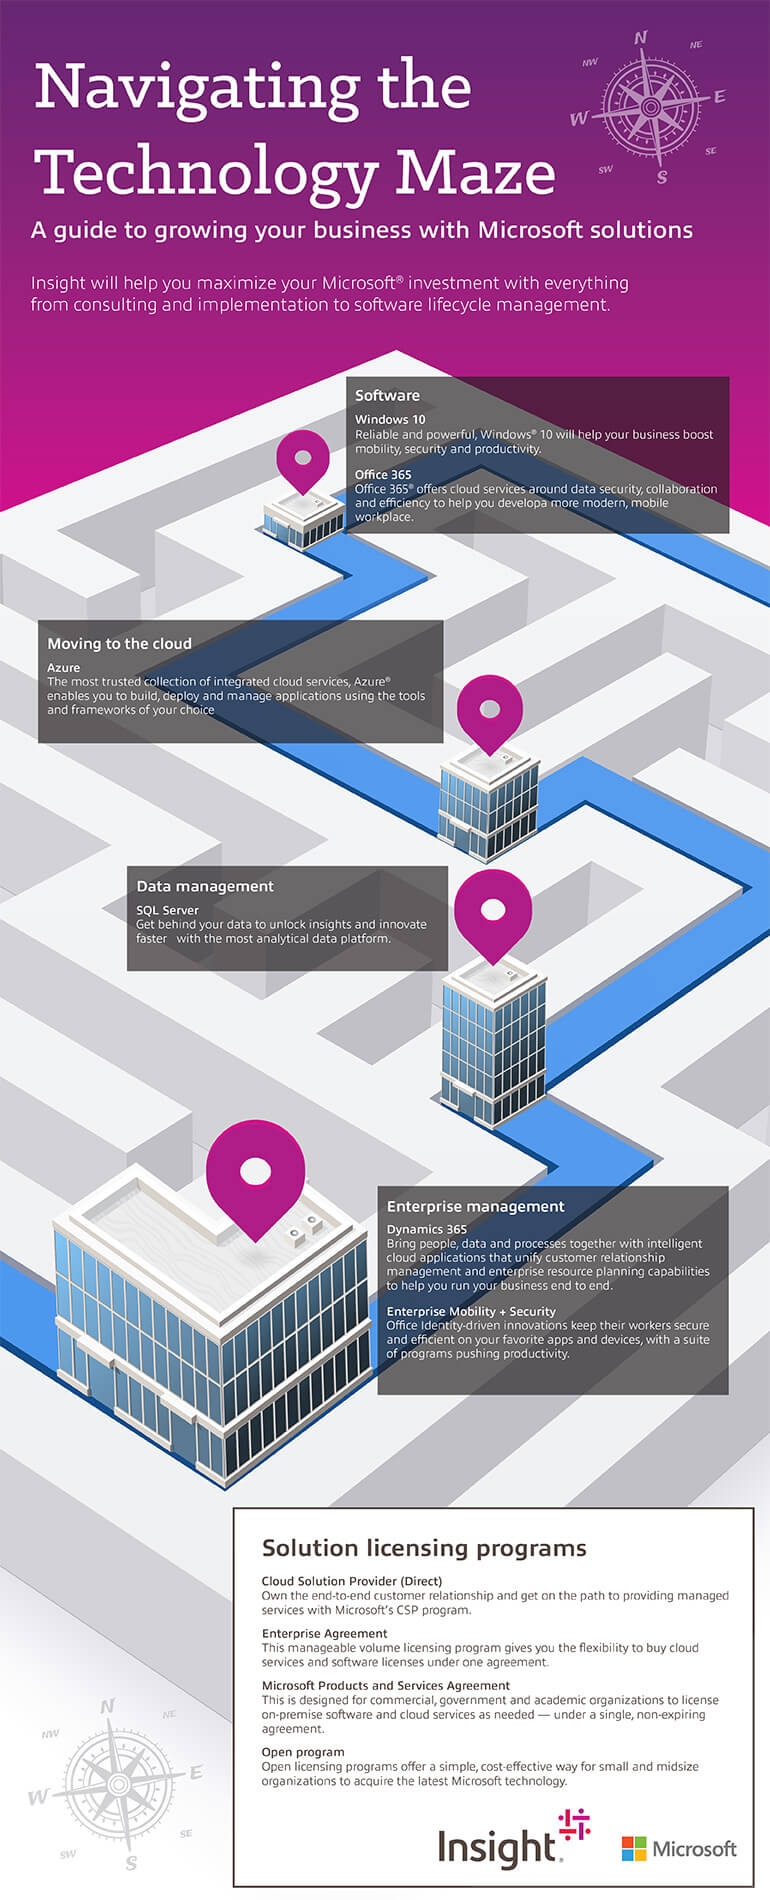 Navigating the Technology Maze Infographic